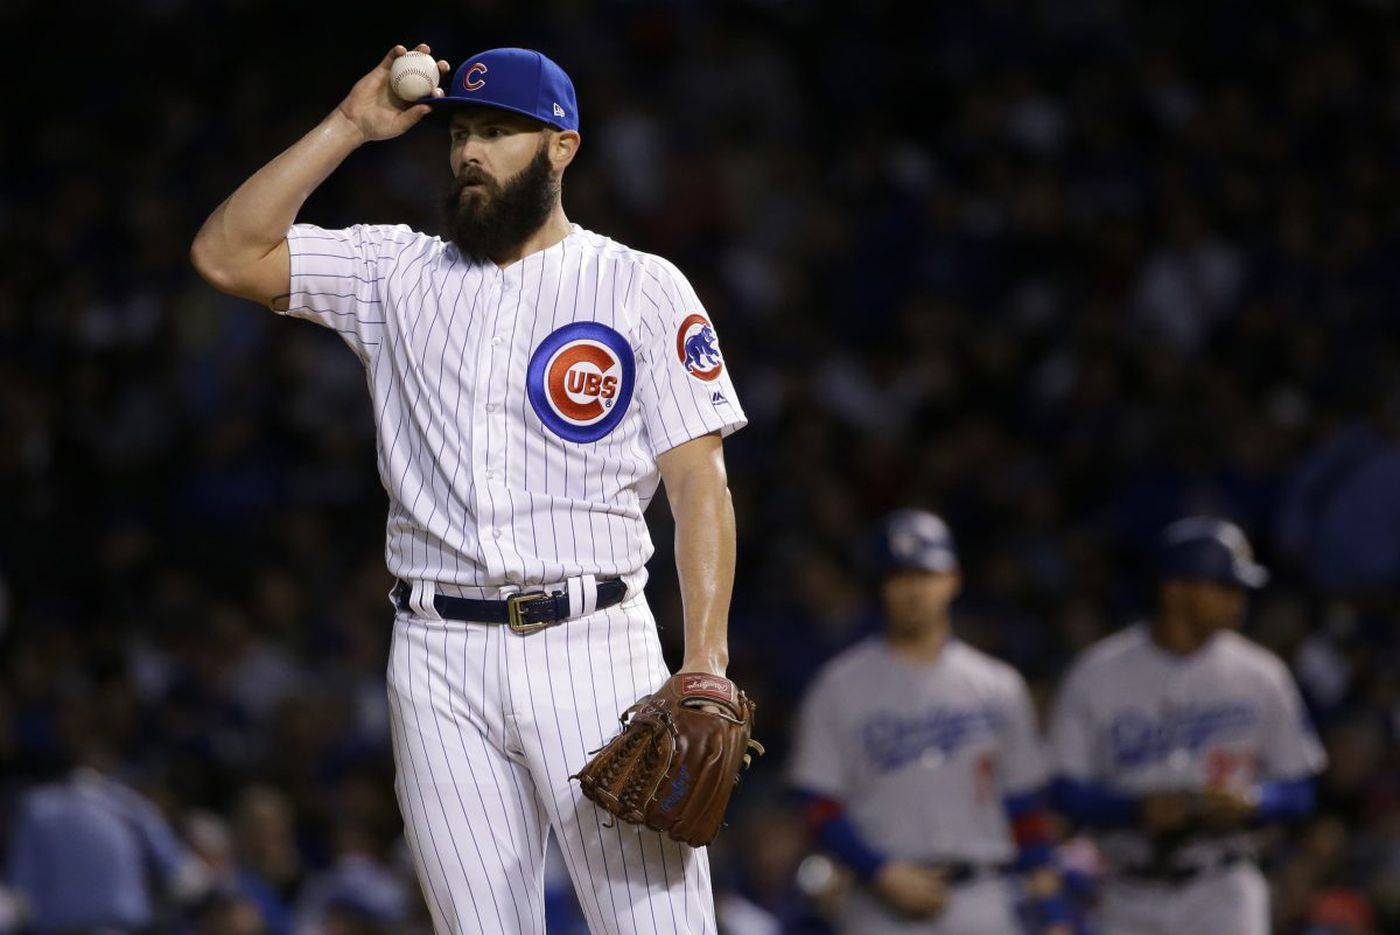 Phillies' Jake Arrieta deal feels like Jim Thome signing | Marcus Hayes